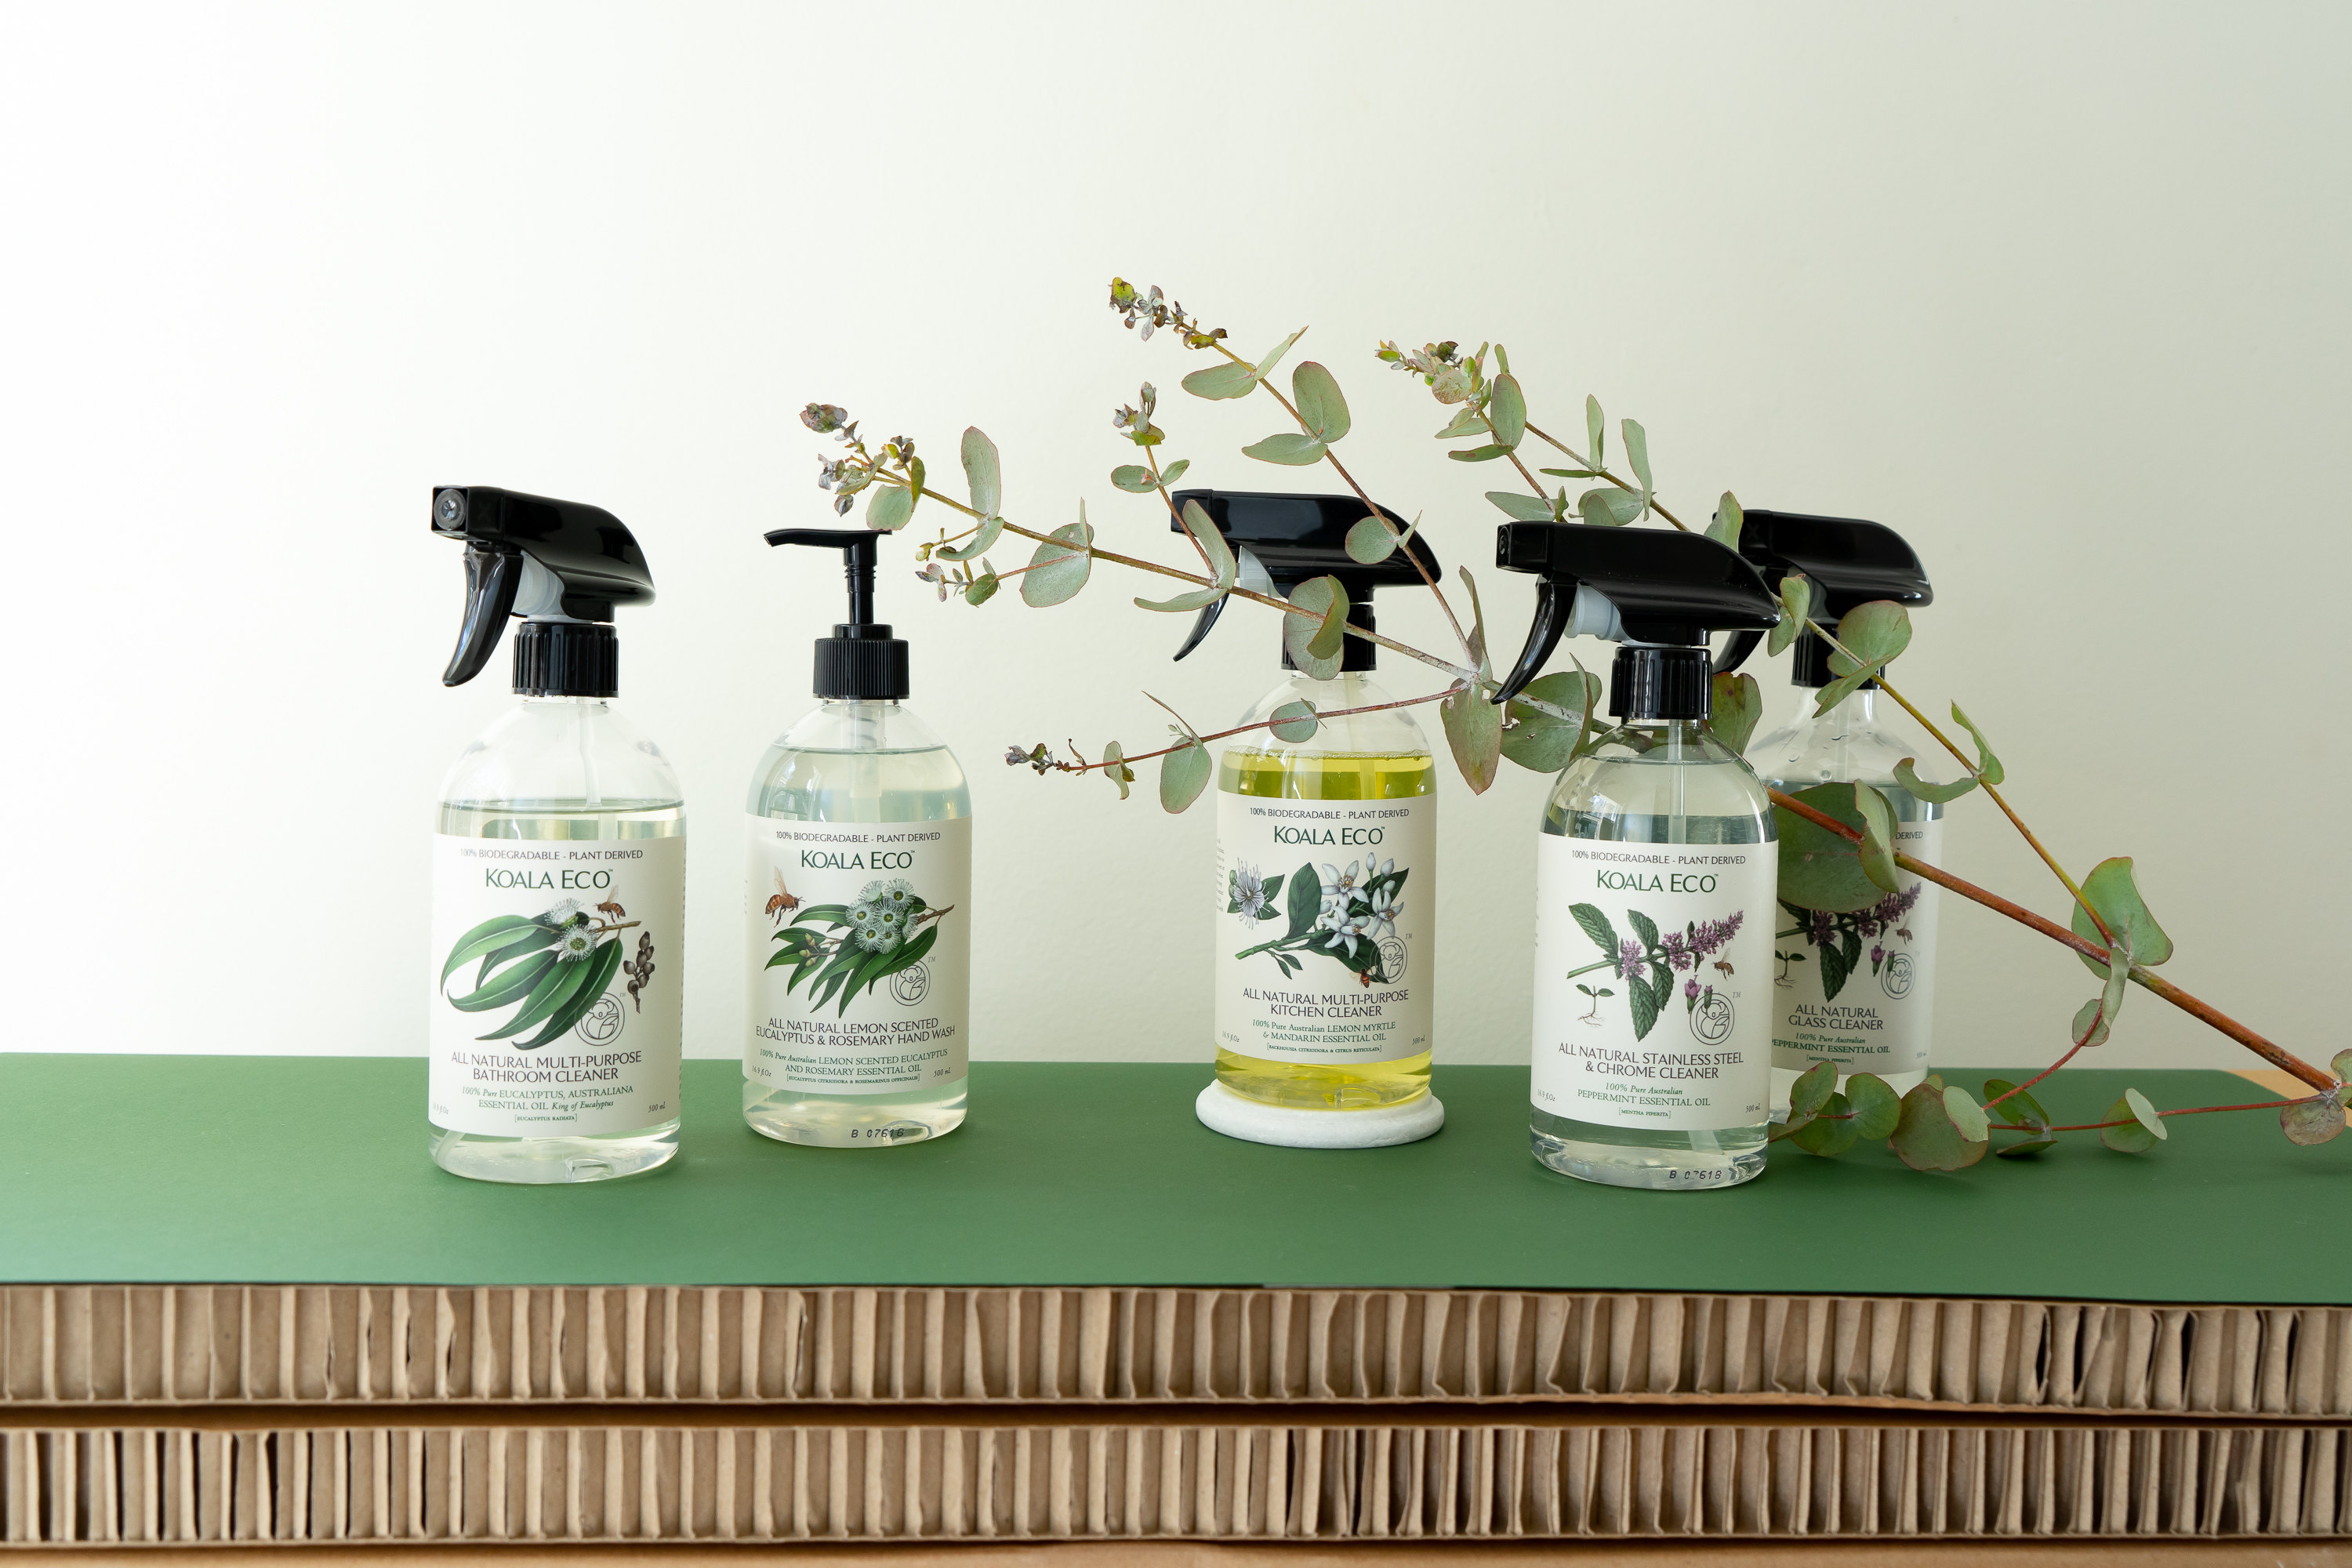 These eco friendly cleaning products